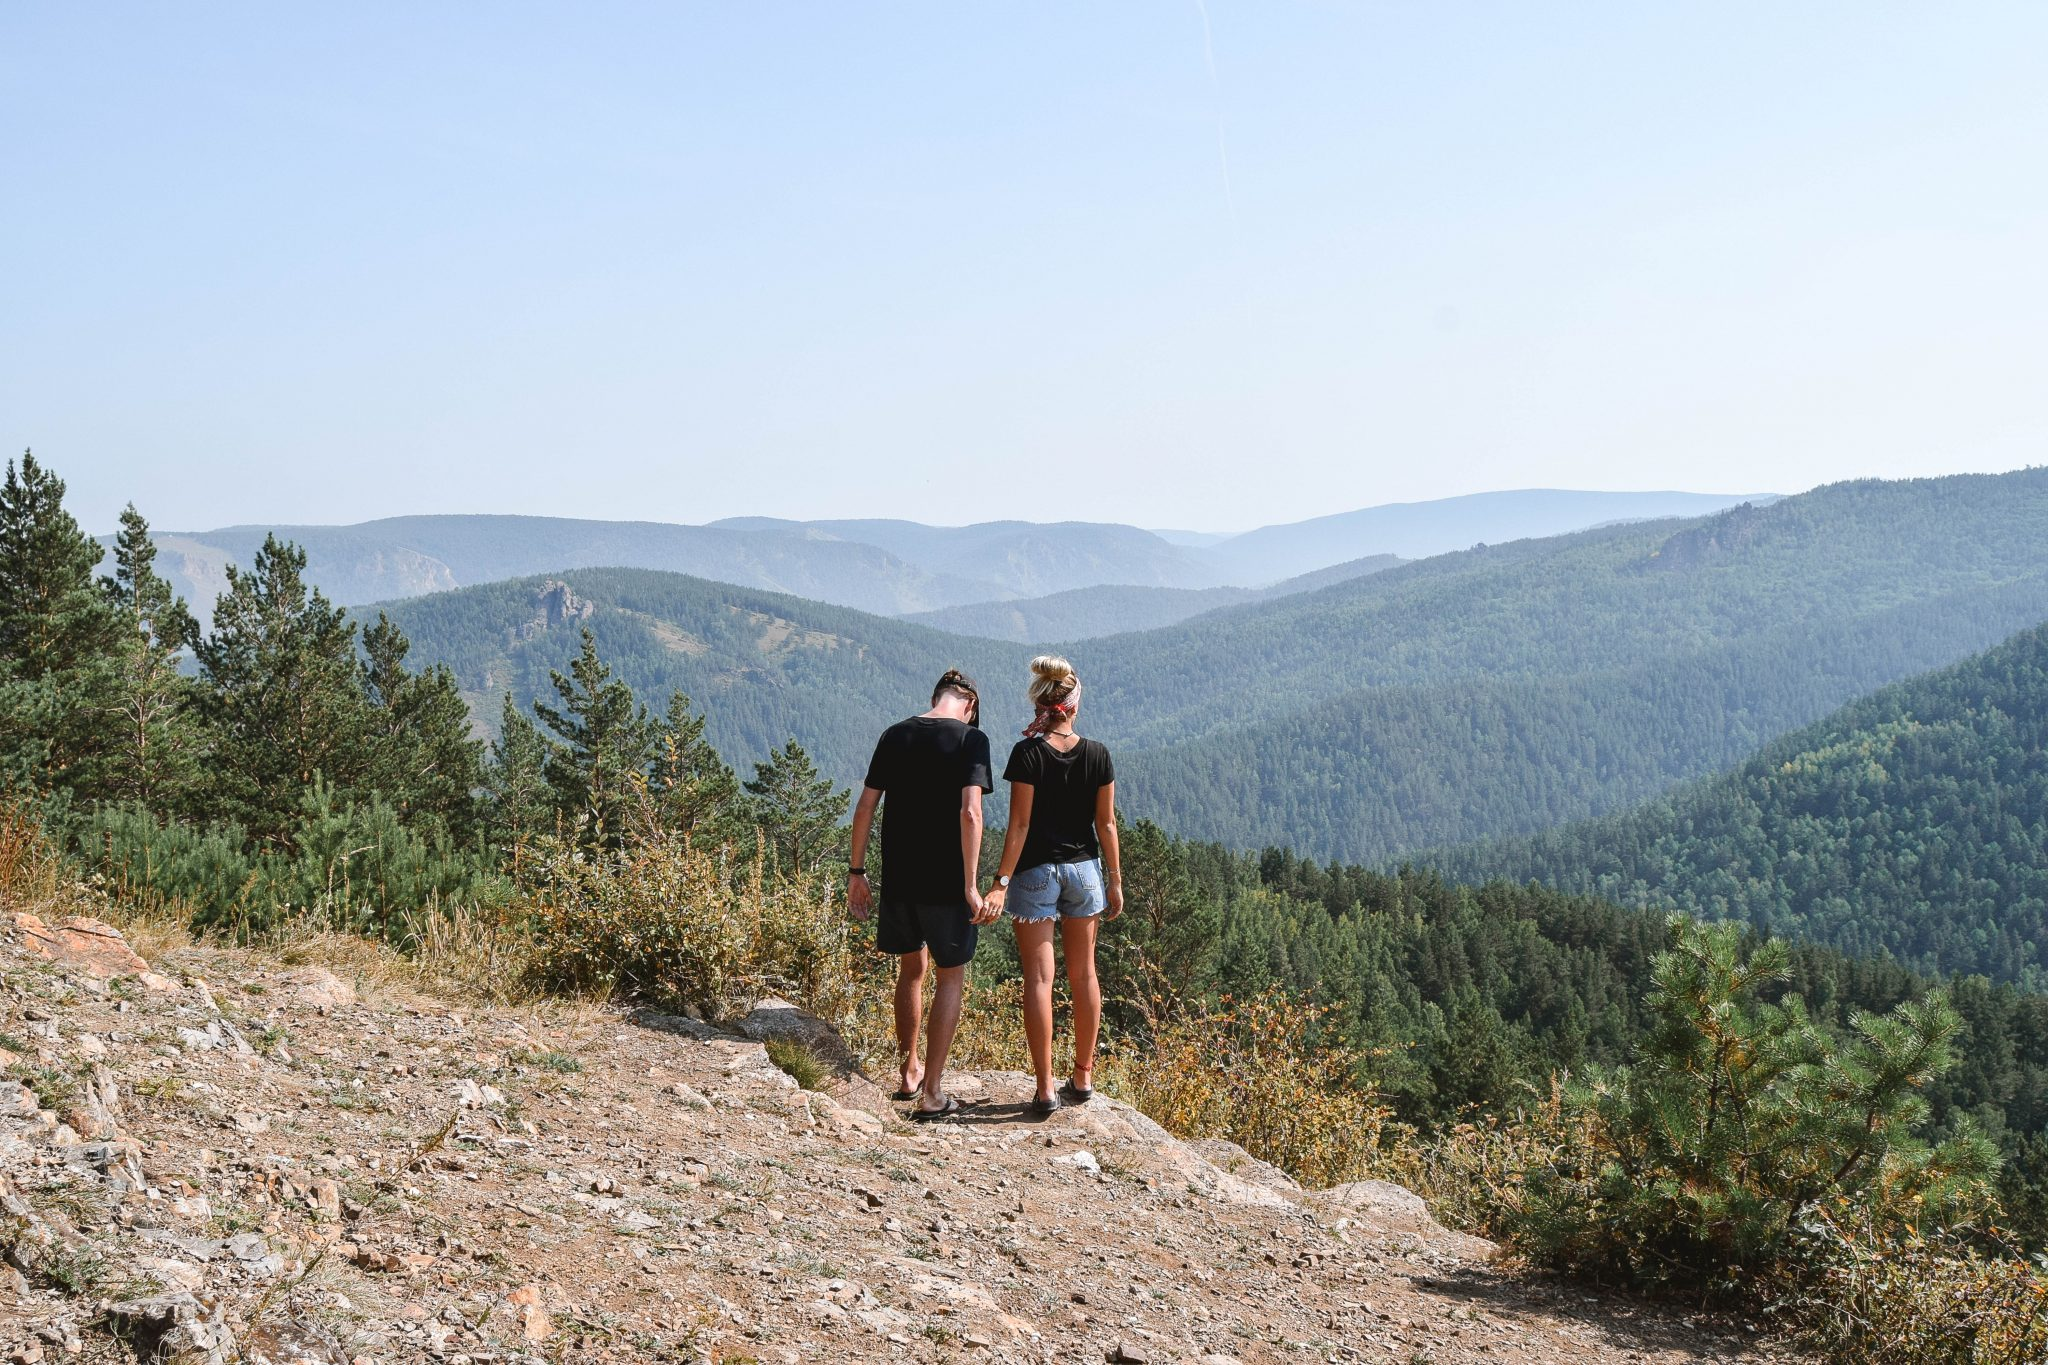 Wanderers & Warriors - Charlie & Lauren UK Travel Couple - Things To Do In Krasnoyarsk - Bobrovy Log Park Krasnoyarsk